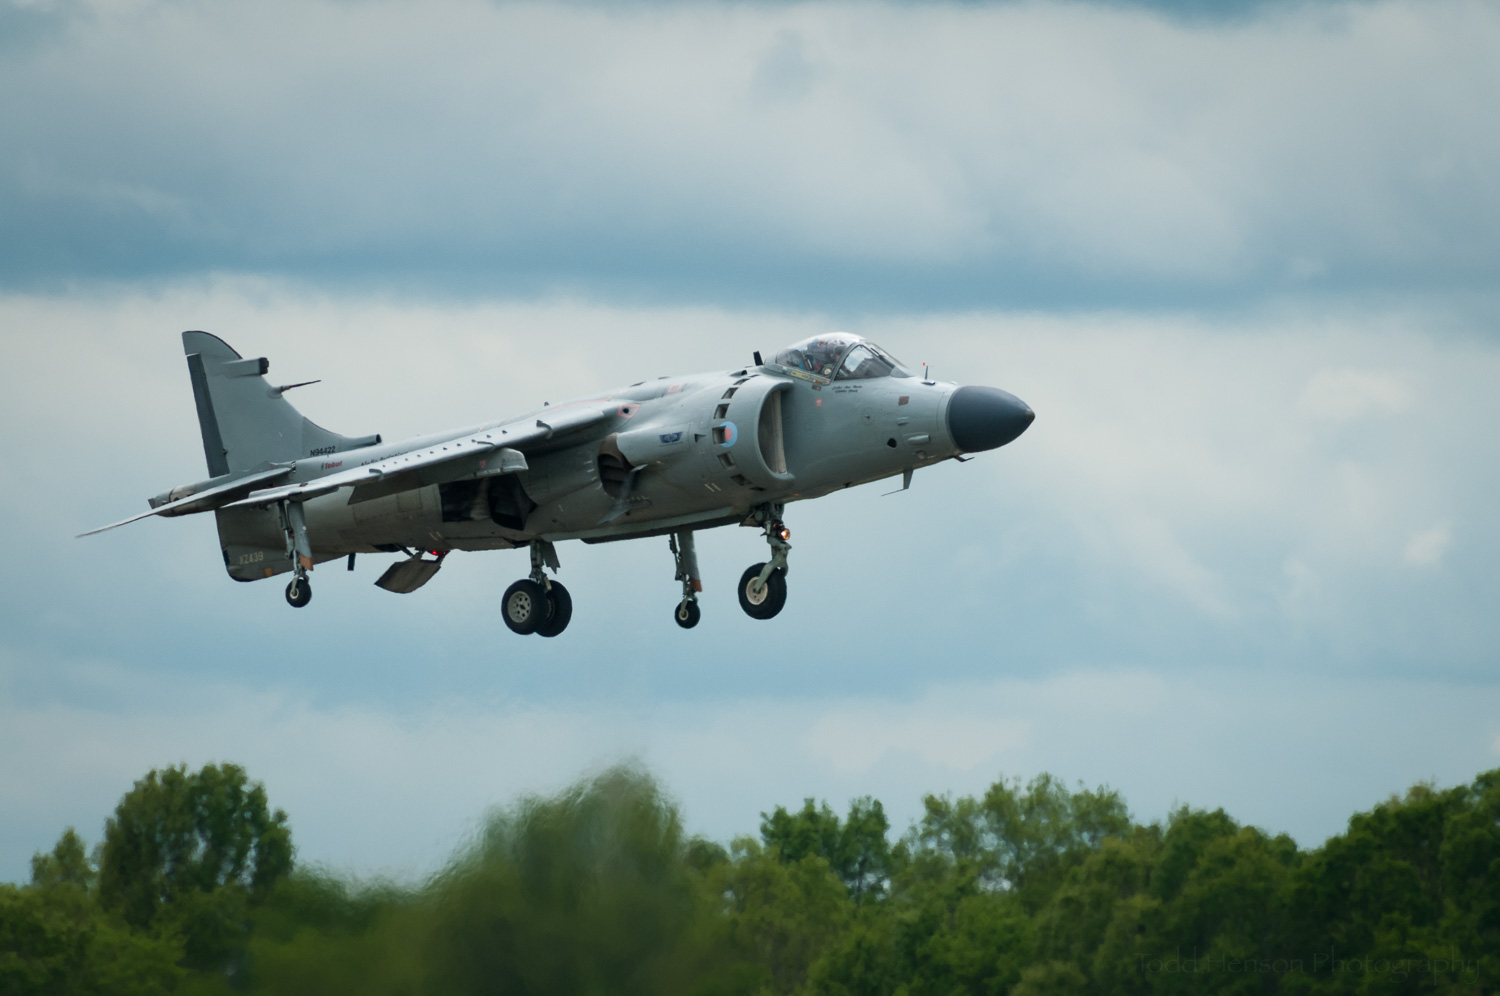 Harrier Vertical Landing. Pilot: Art Nalls.  Camera settings: 400mm, 1/1000 sec, f/6.3